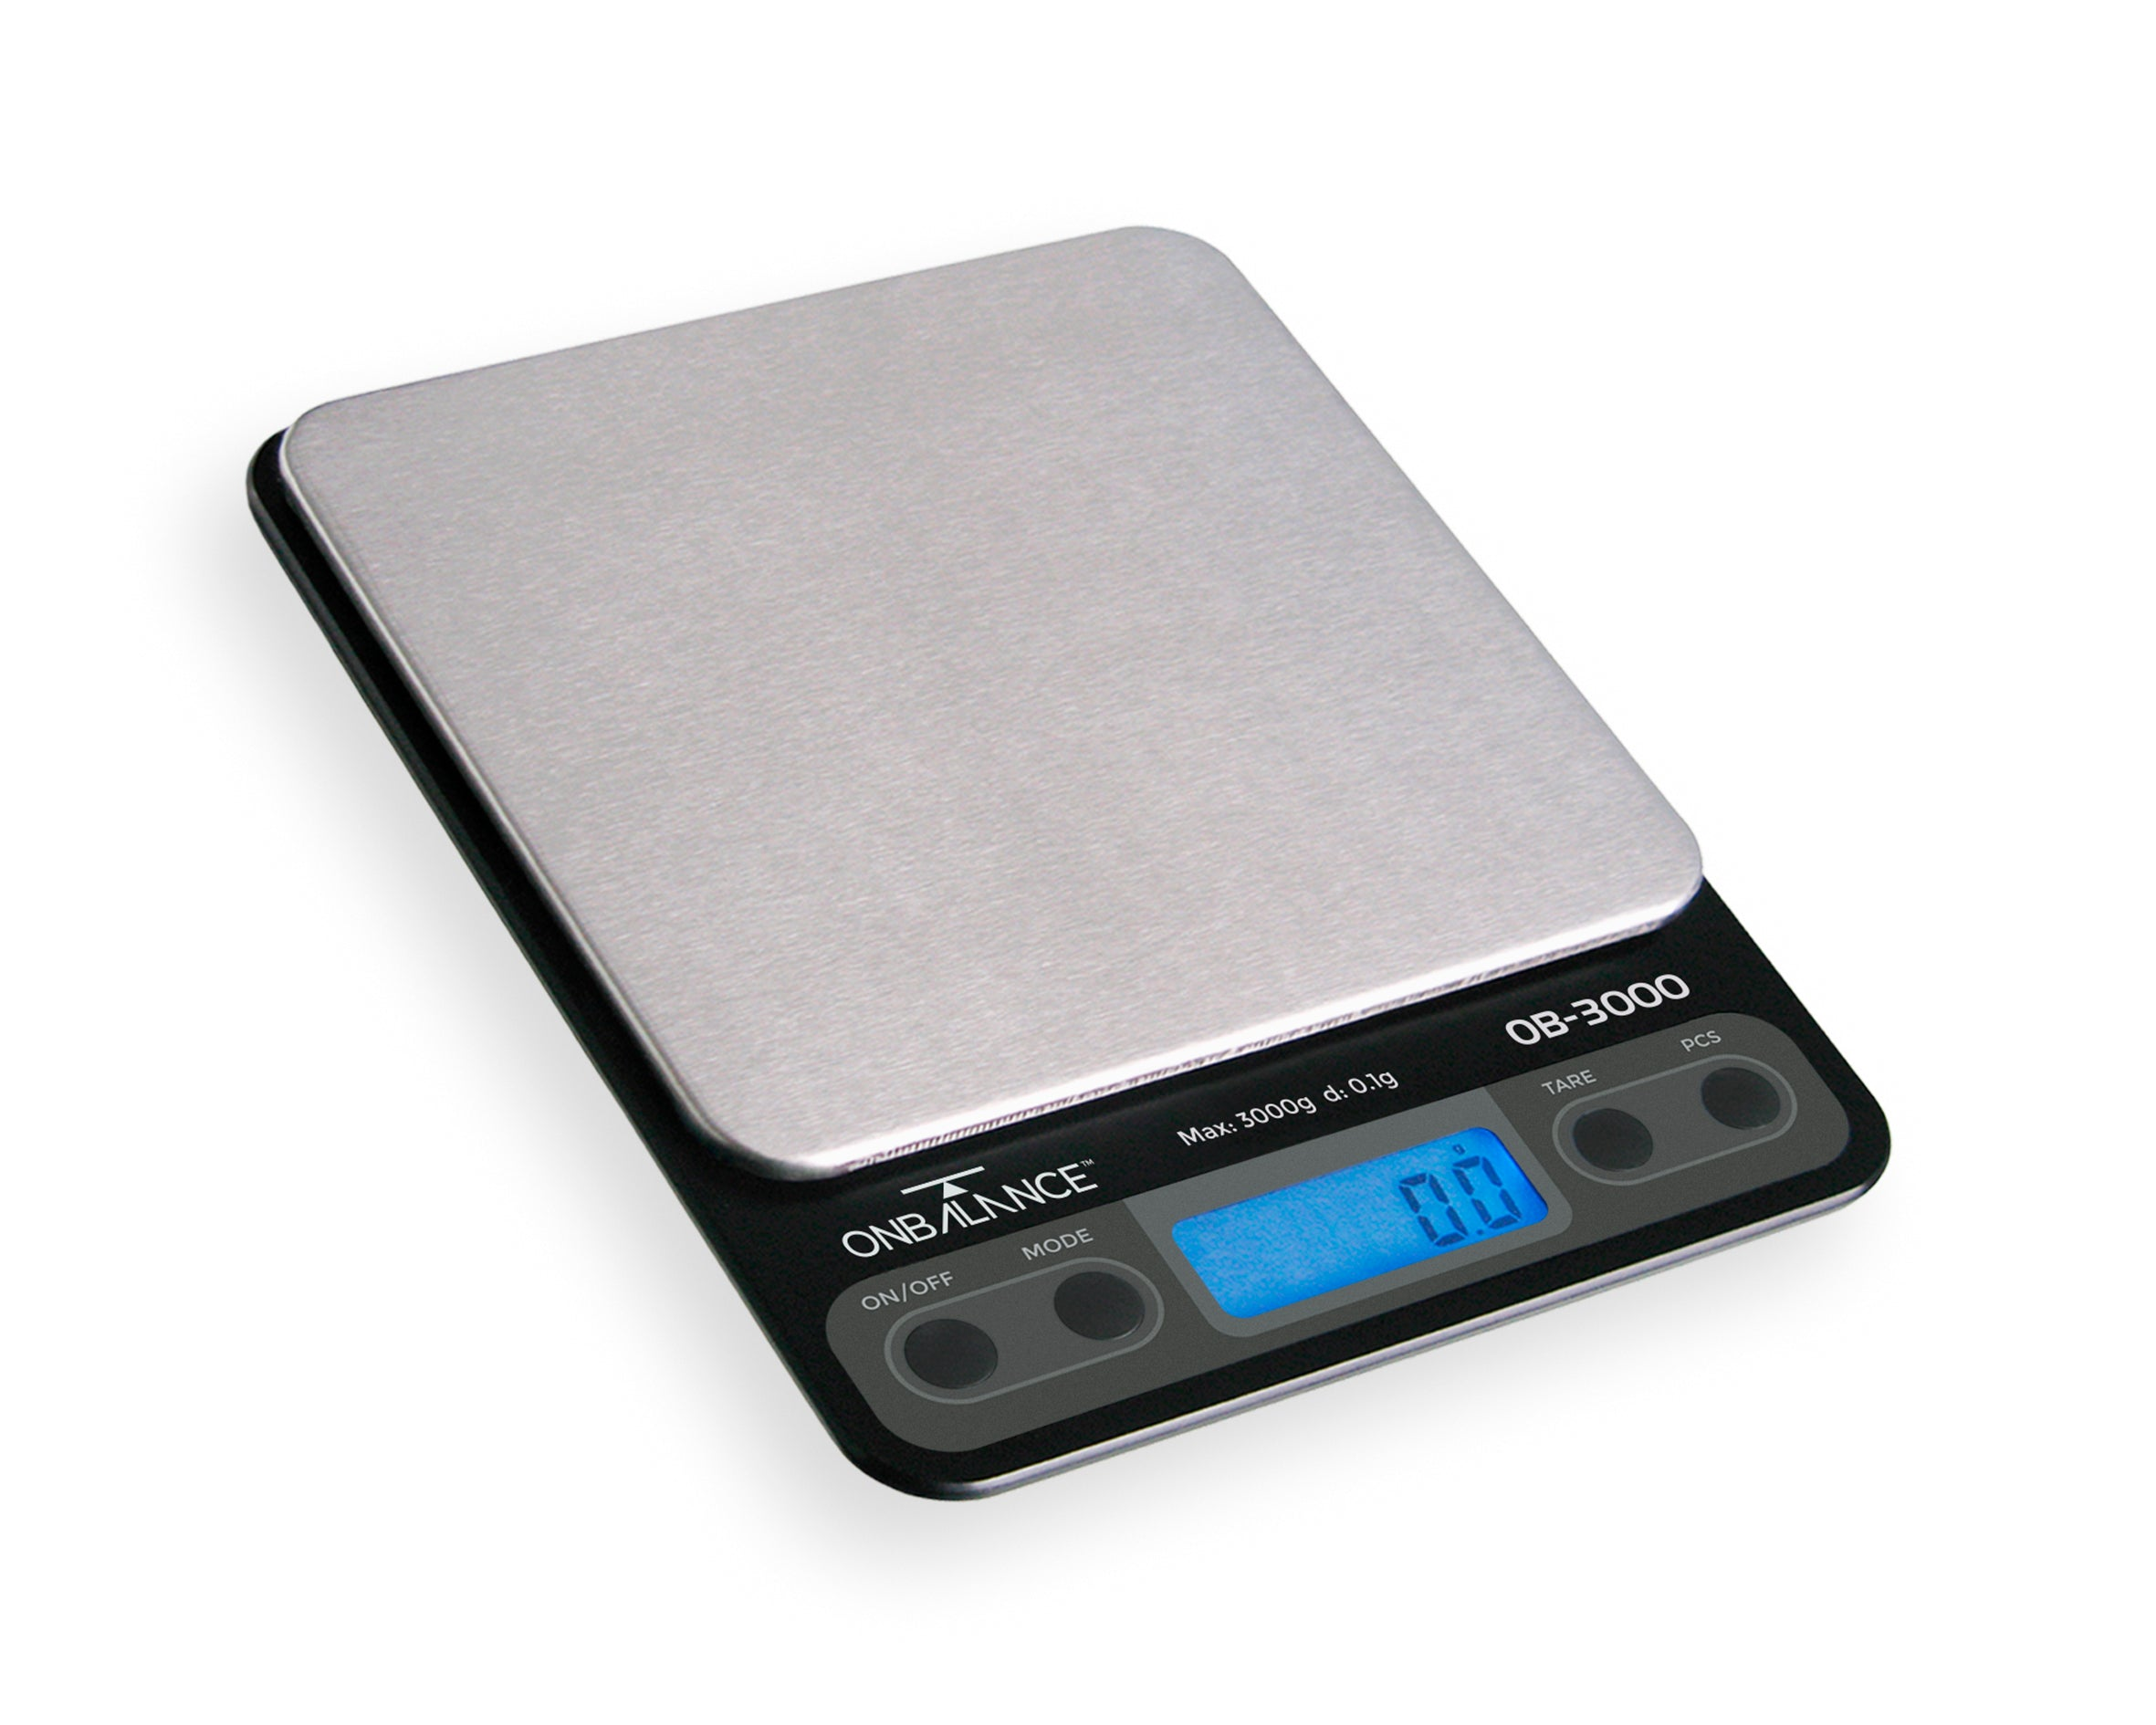 OB-3000 On Balance Table Top Scale 3000g x 0.1g